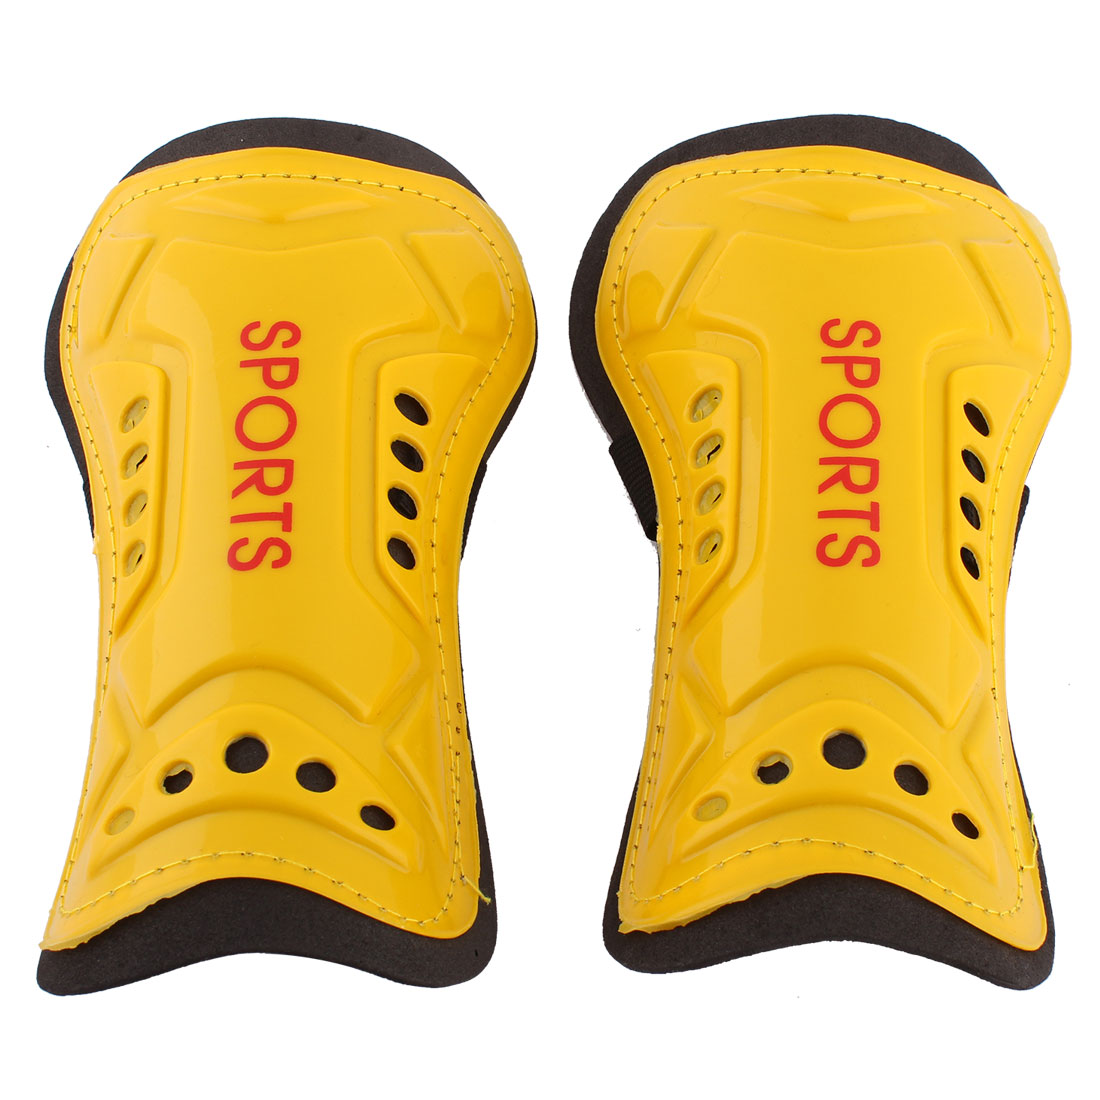 Outdoor Sports Support Shield Calf Sleeve Guard Leg Protector Yellow Pair